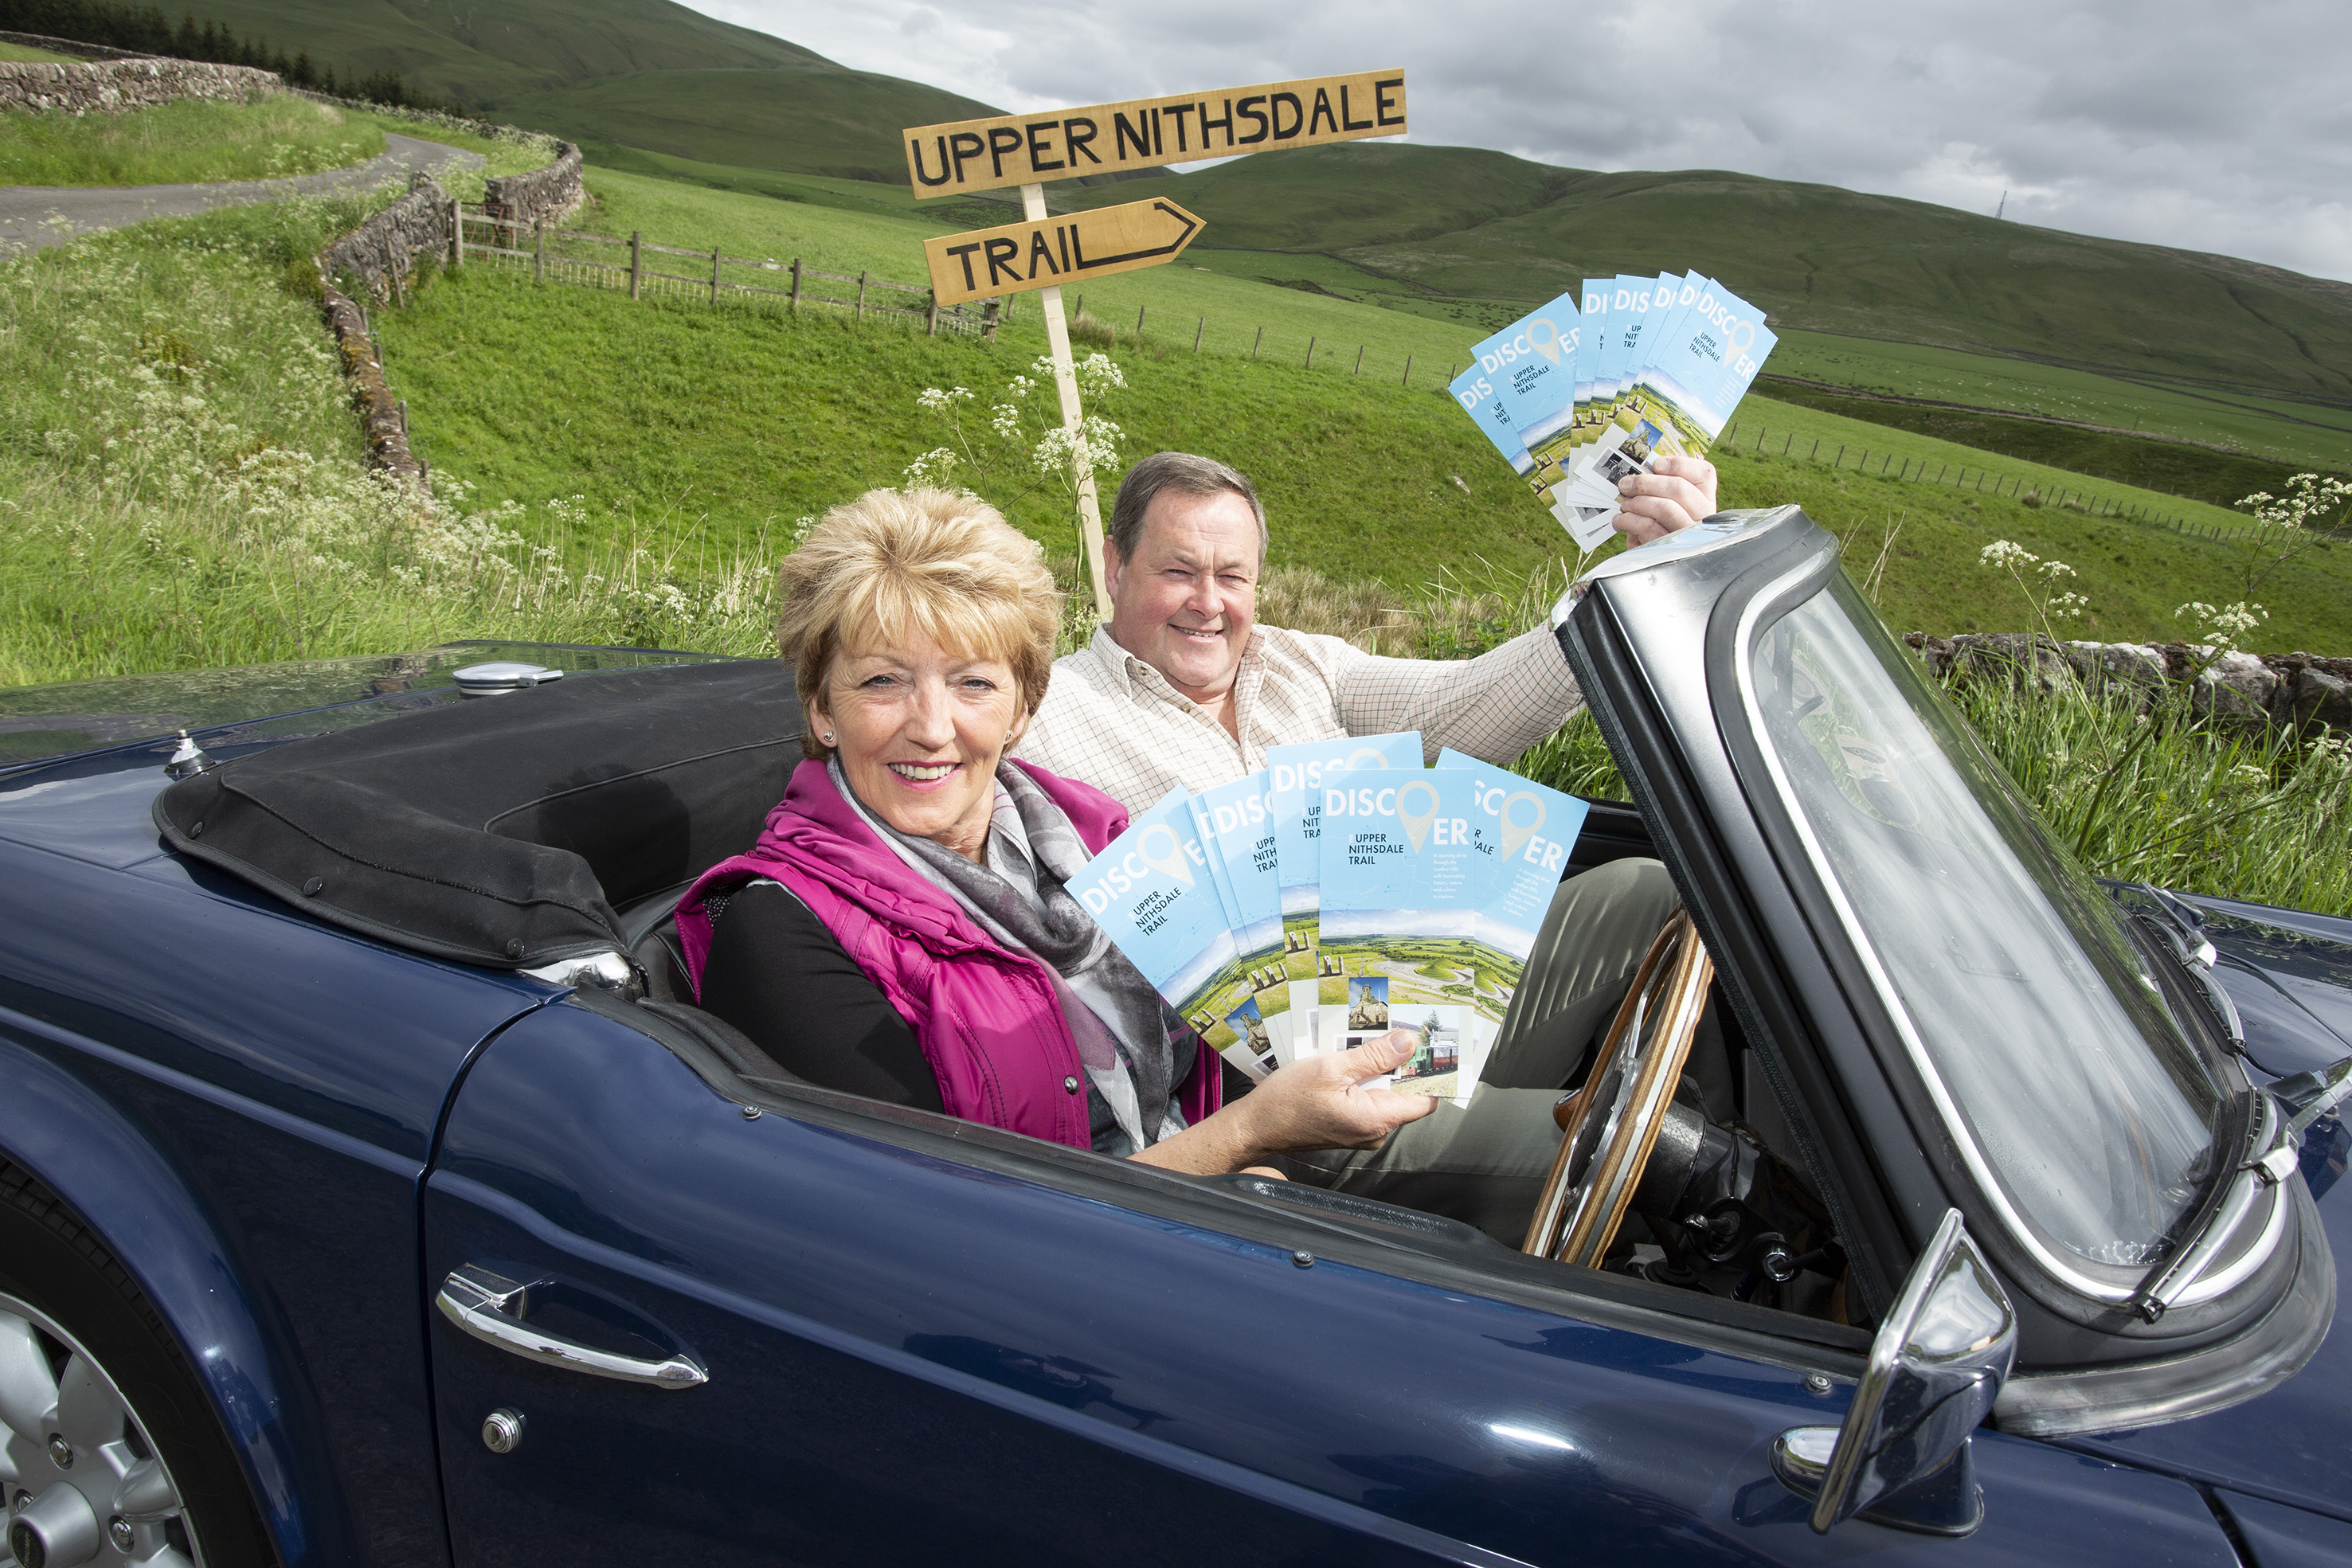 Rose Murdoch and Jon Evans of Upper Nithsdale Tourism Partnership pictured on the newly launched trail